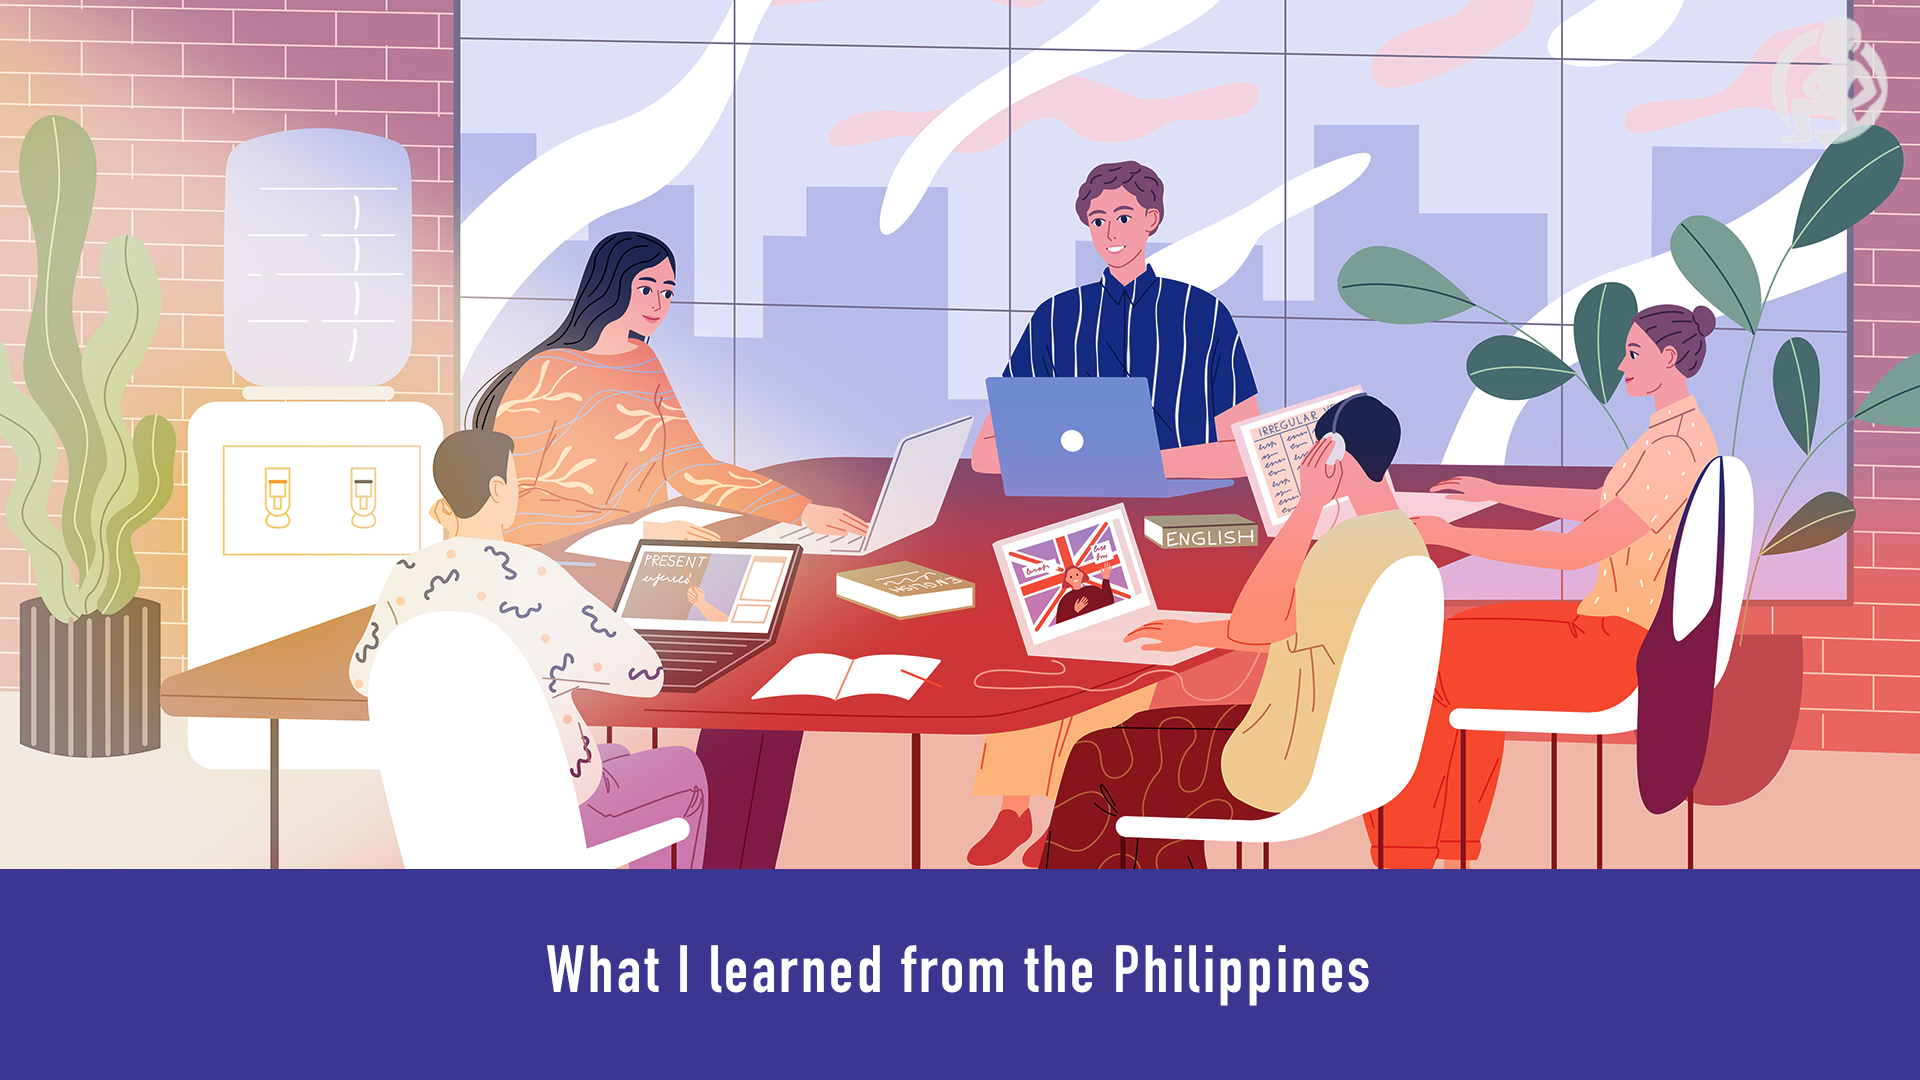 496 What I learned from the Philippines